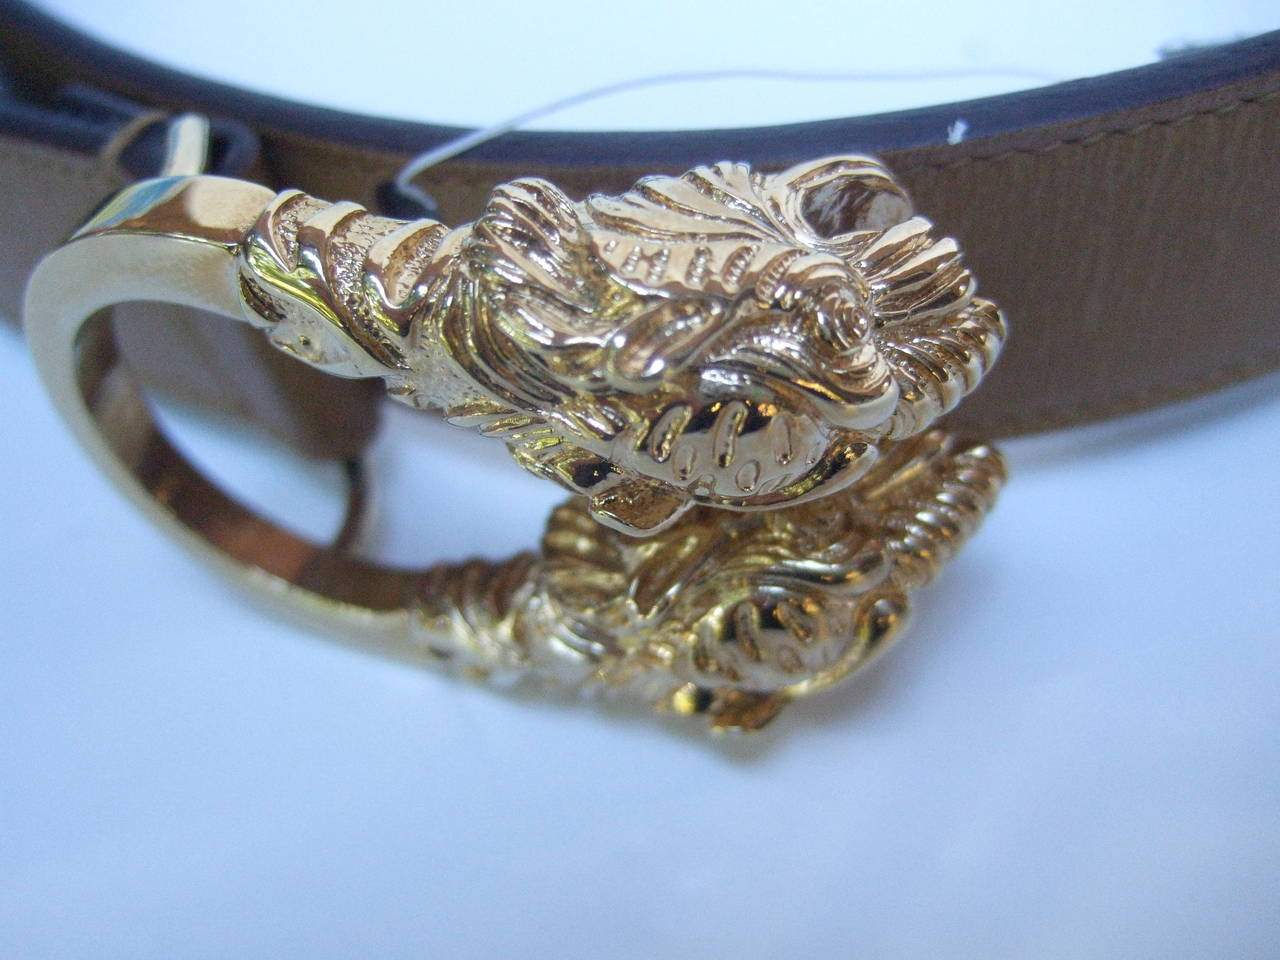 f52a39eb1 Gucci Gilt Metal Tiger Buckle Caramel Leather Belt Size 28 In New Condition  For Sale In